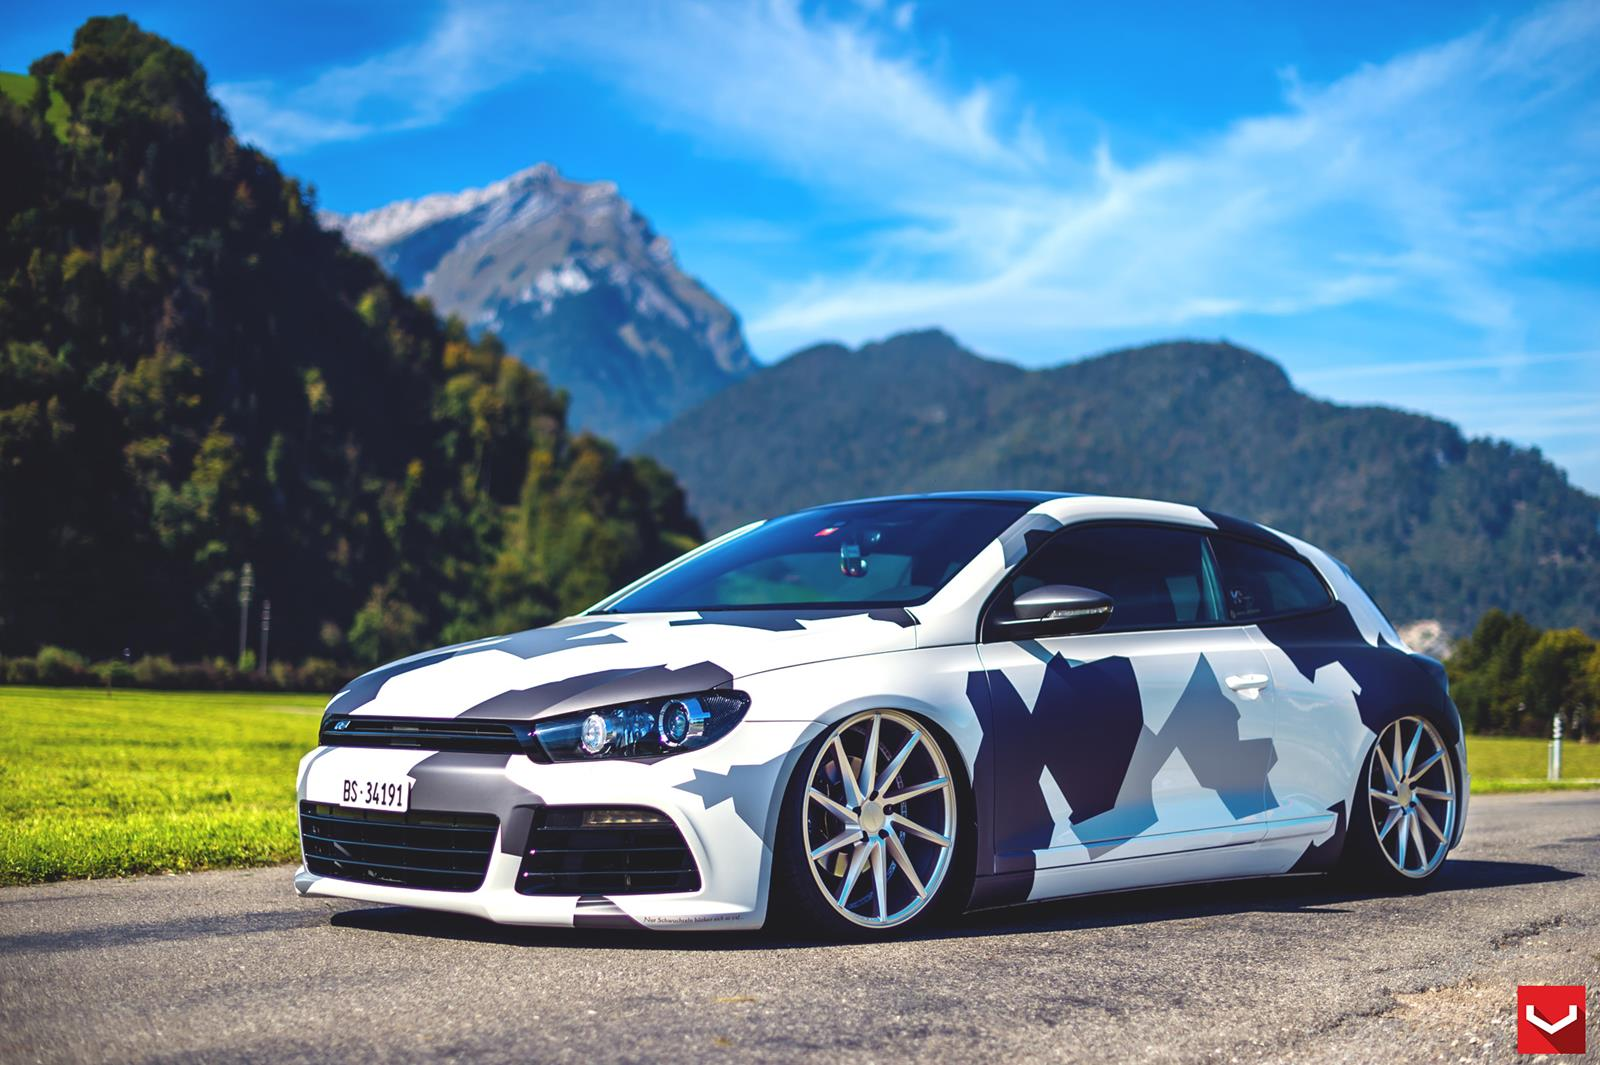 vw scirocco tuning pictures vw tuning mag. Black Bedroom Furniture Sets. Home Design Ideas